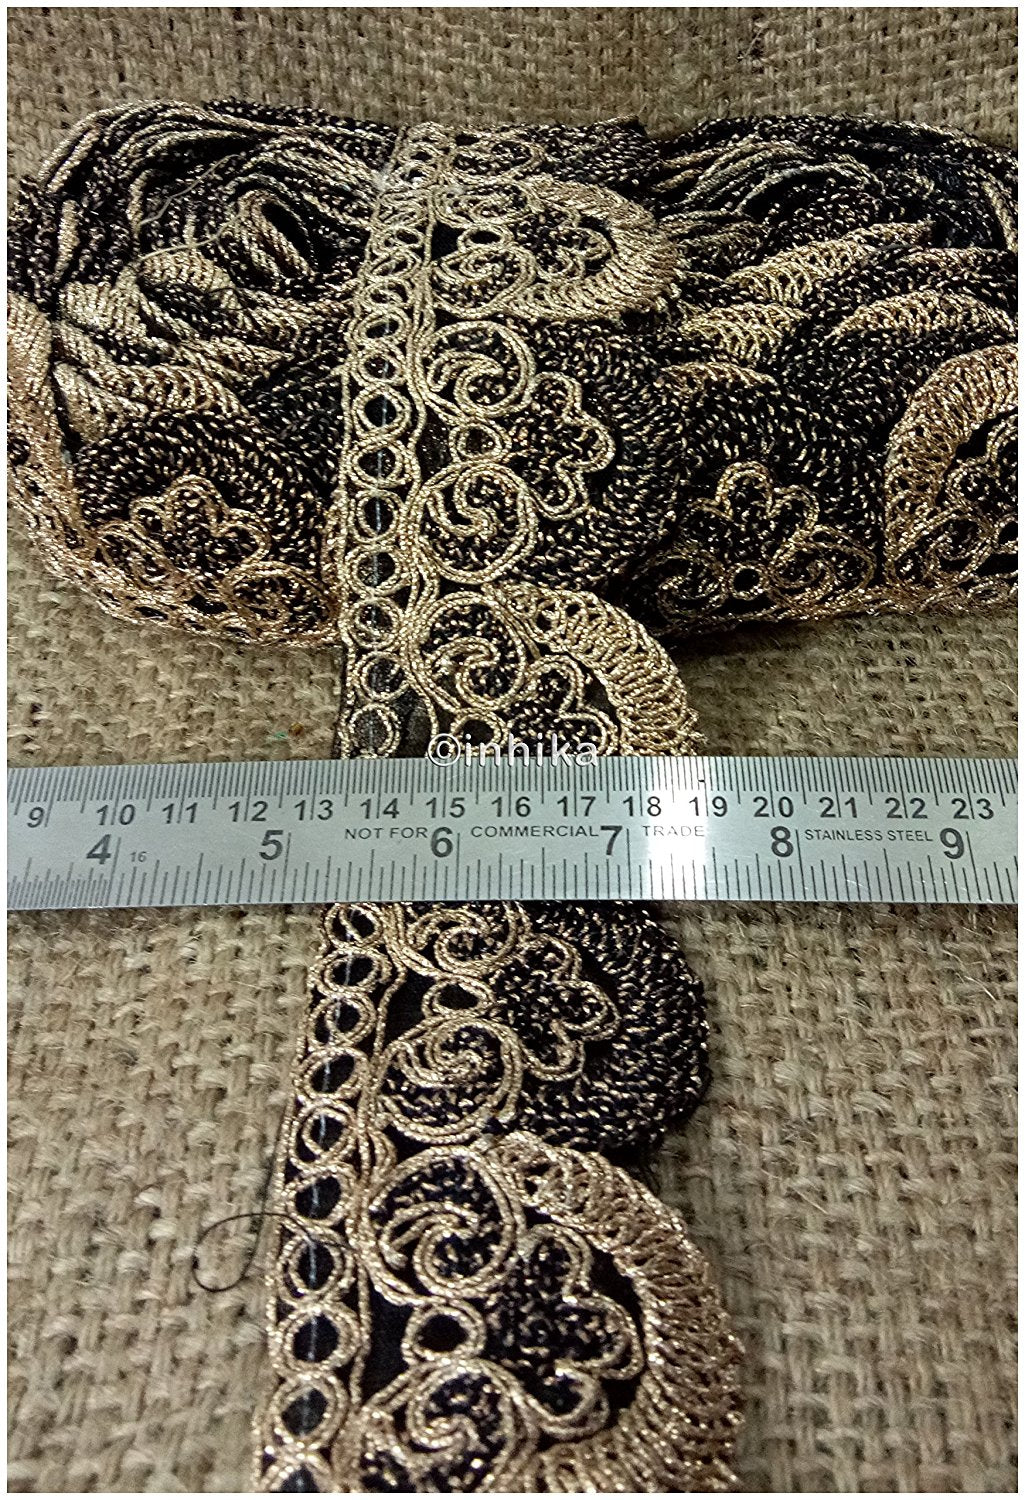 lace trim fabric where to buy fringe for clothing Black-Embroidery-2-Inch-Wide-3257